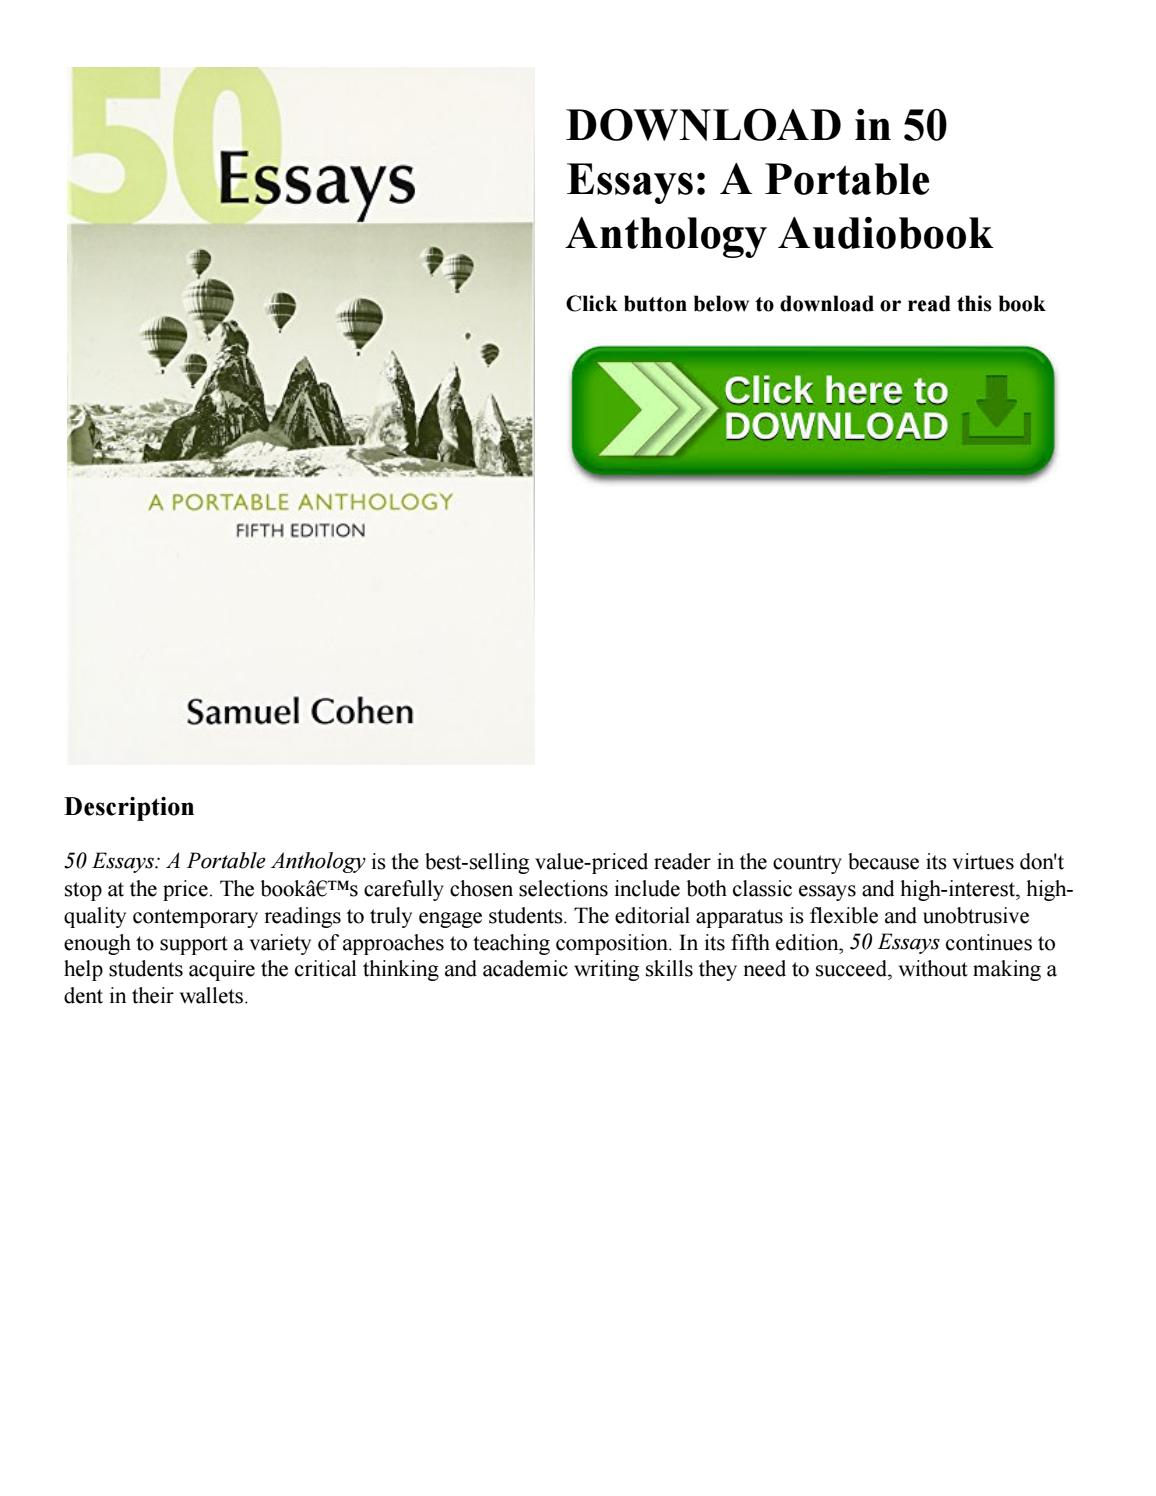 005 Essay Example Essays Portable Anthology 5th Edition Pdf Page 1 Fascinating 50 A Full